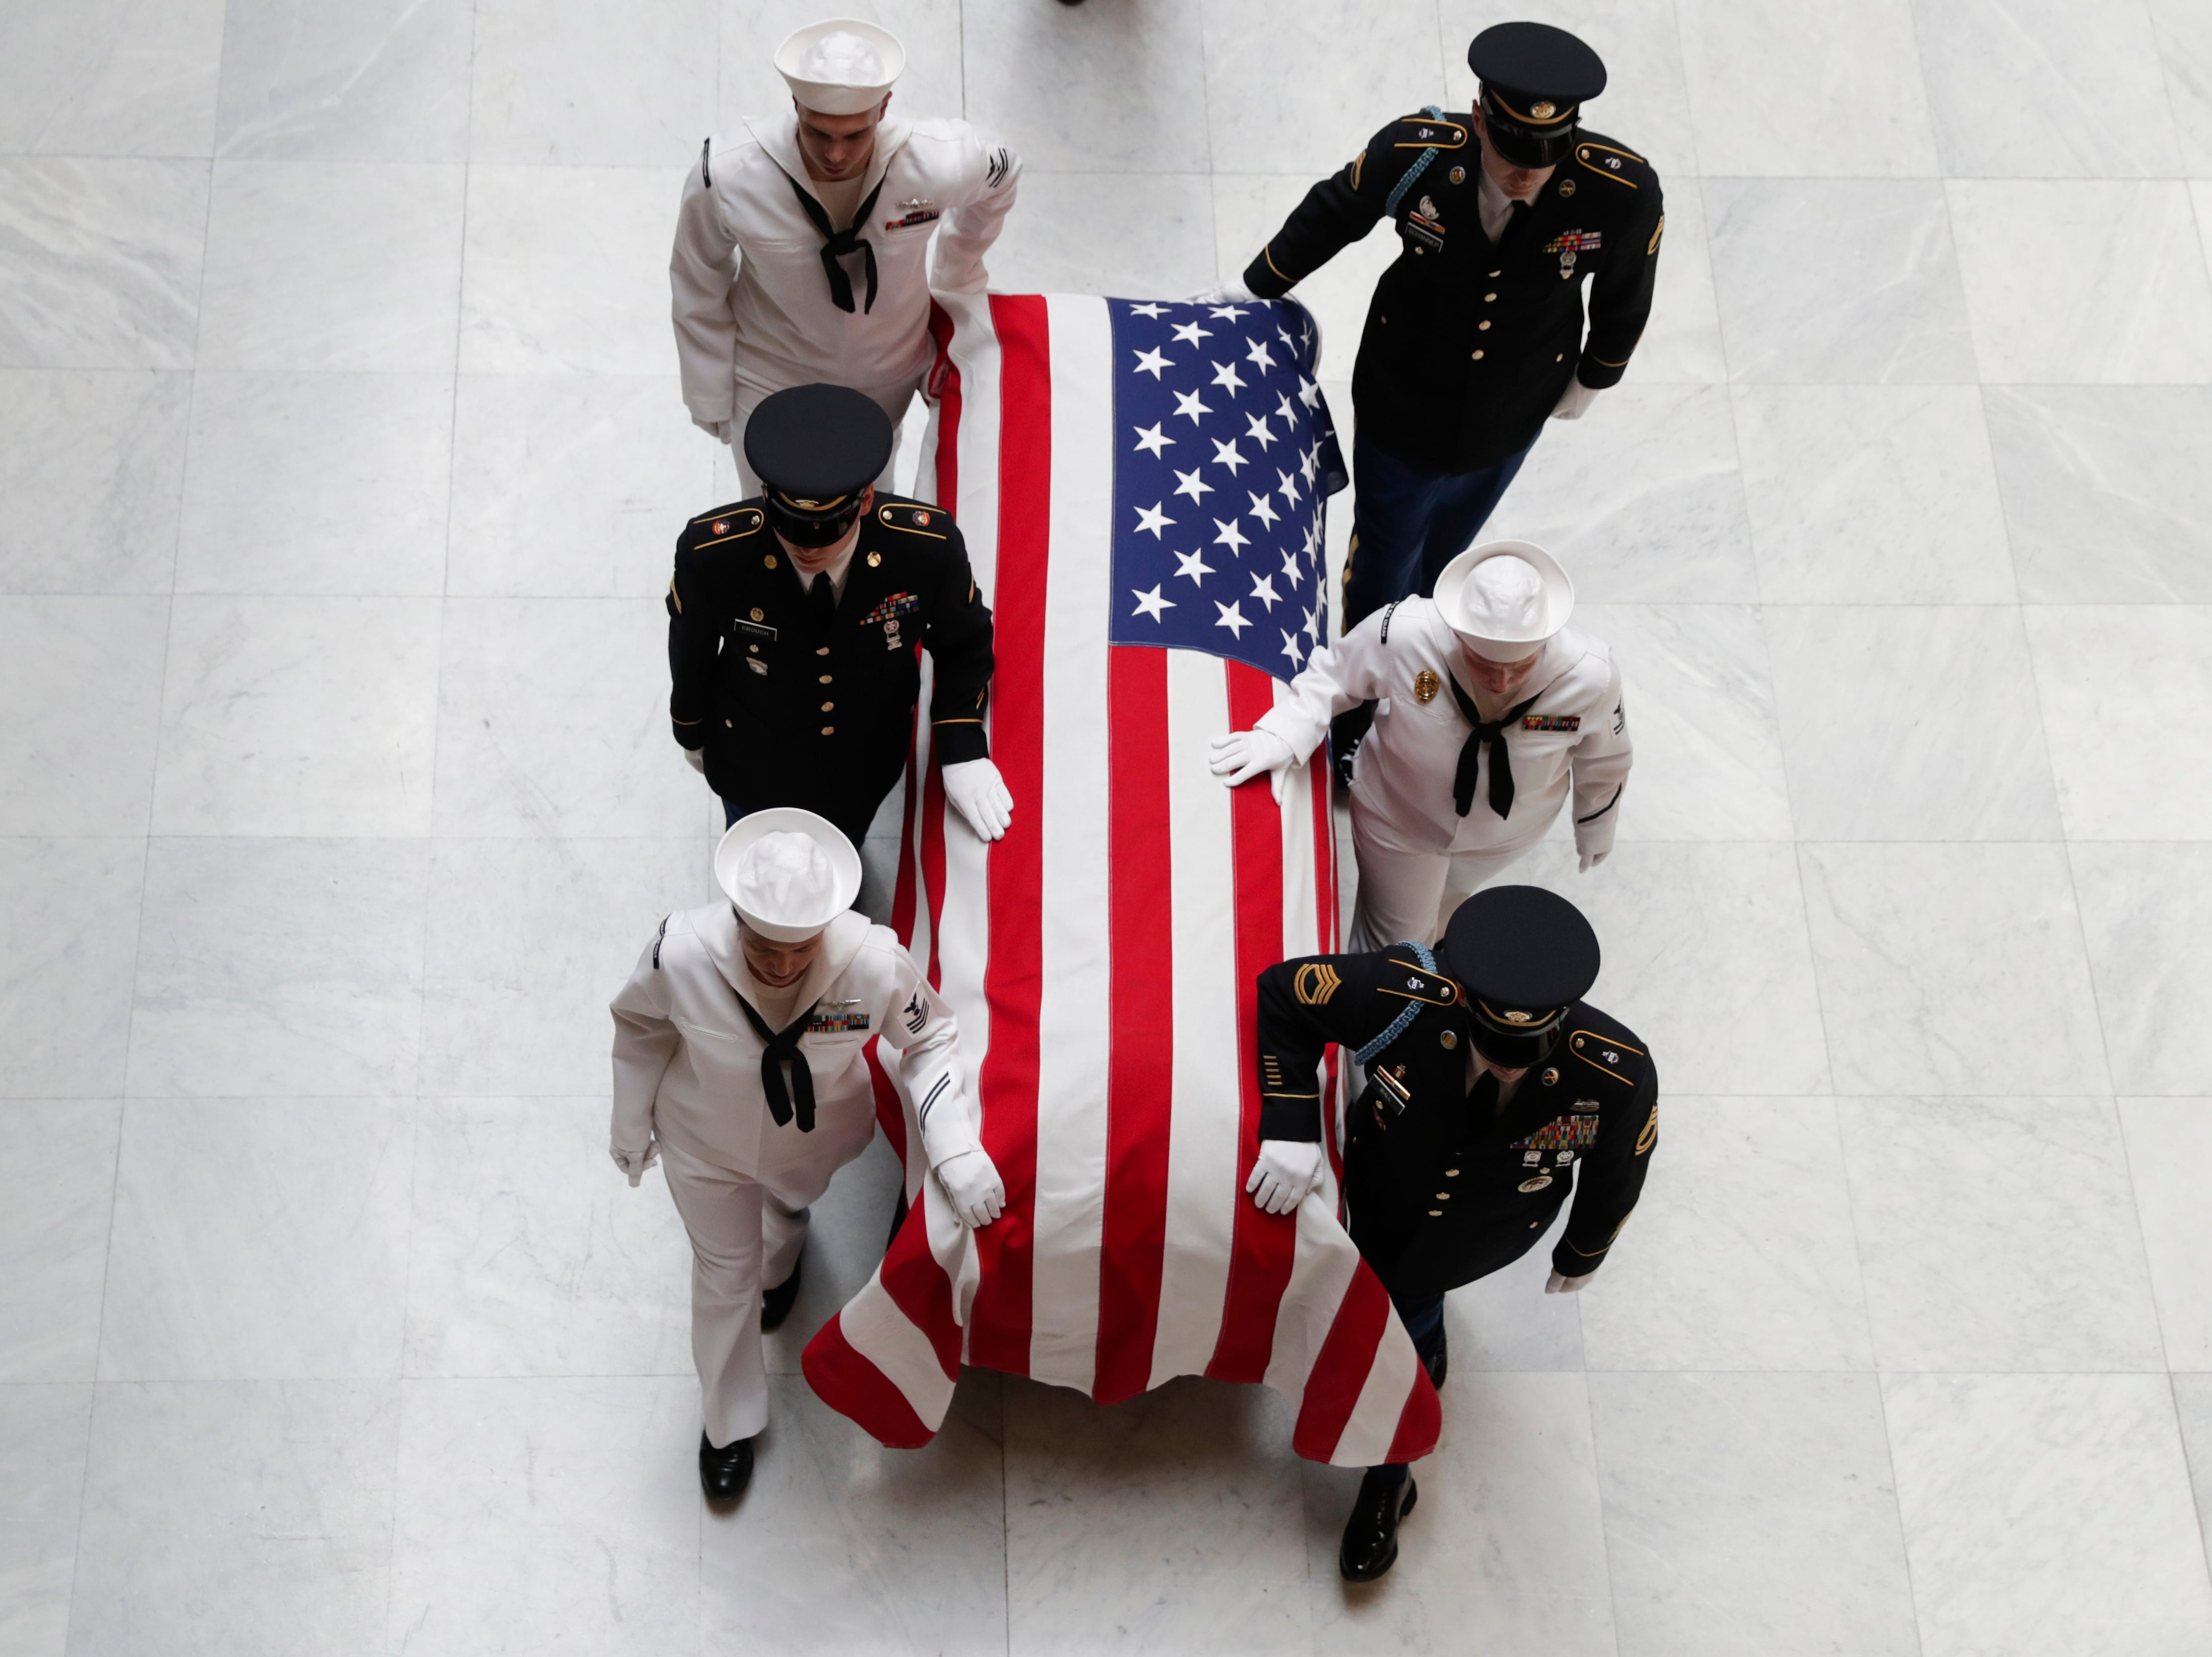 """A military honor guard escorts the casket of Sen. Richard Lugar into the Indiana Statehouse in Indianapolis, Tuesday, May 14, 2019. Lugar was a longtime Republican senator and former Indianapolis mayor who's been hailed as an """"American statesman"""" since he died April 28 at age 87."""